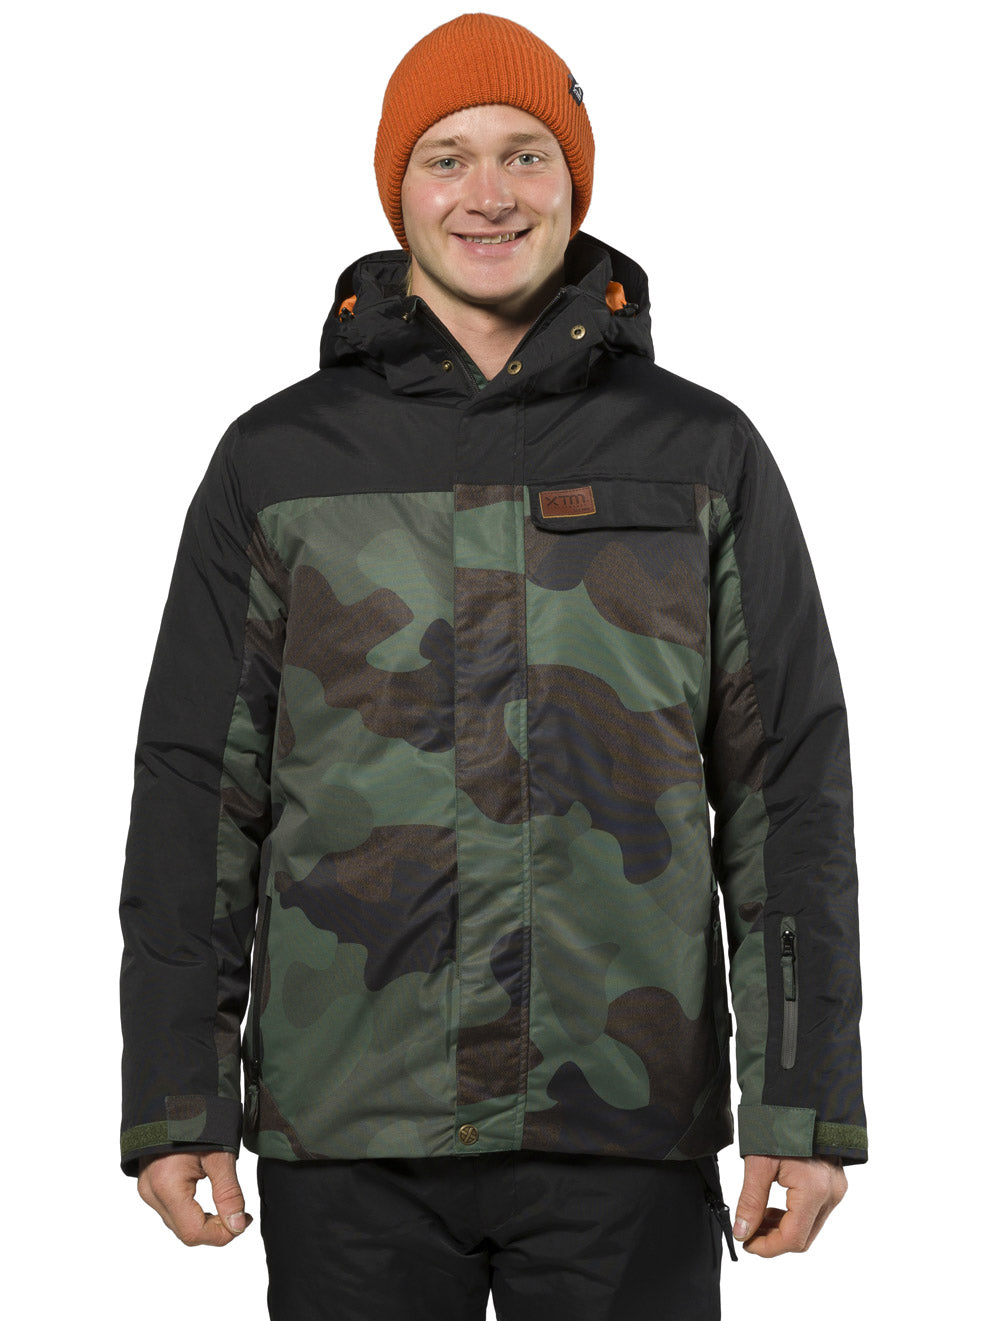 XTM Axel Jacket | Camo- Shop Skis and snow gear online nz - snowscene